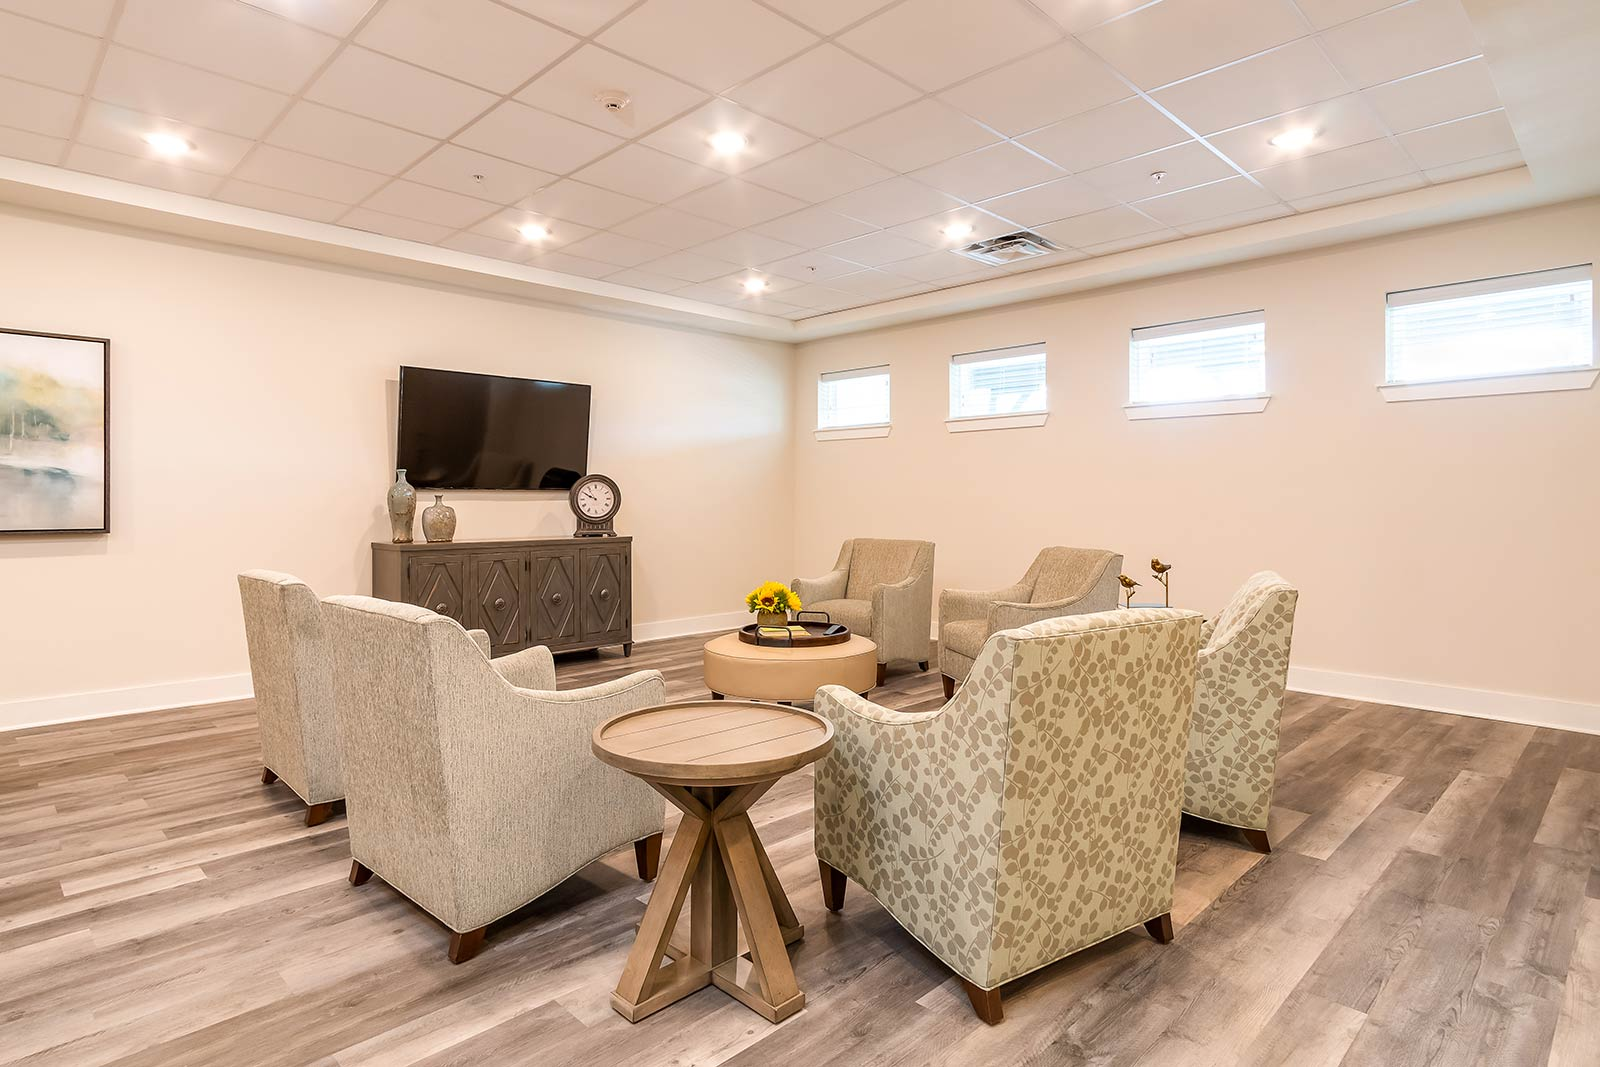 Lounge area with TV, couches and chairs in our Plant City FL assisted living and memory care community